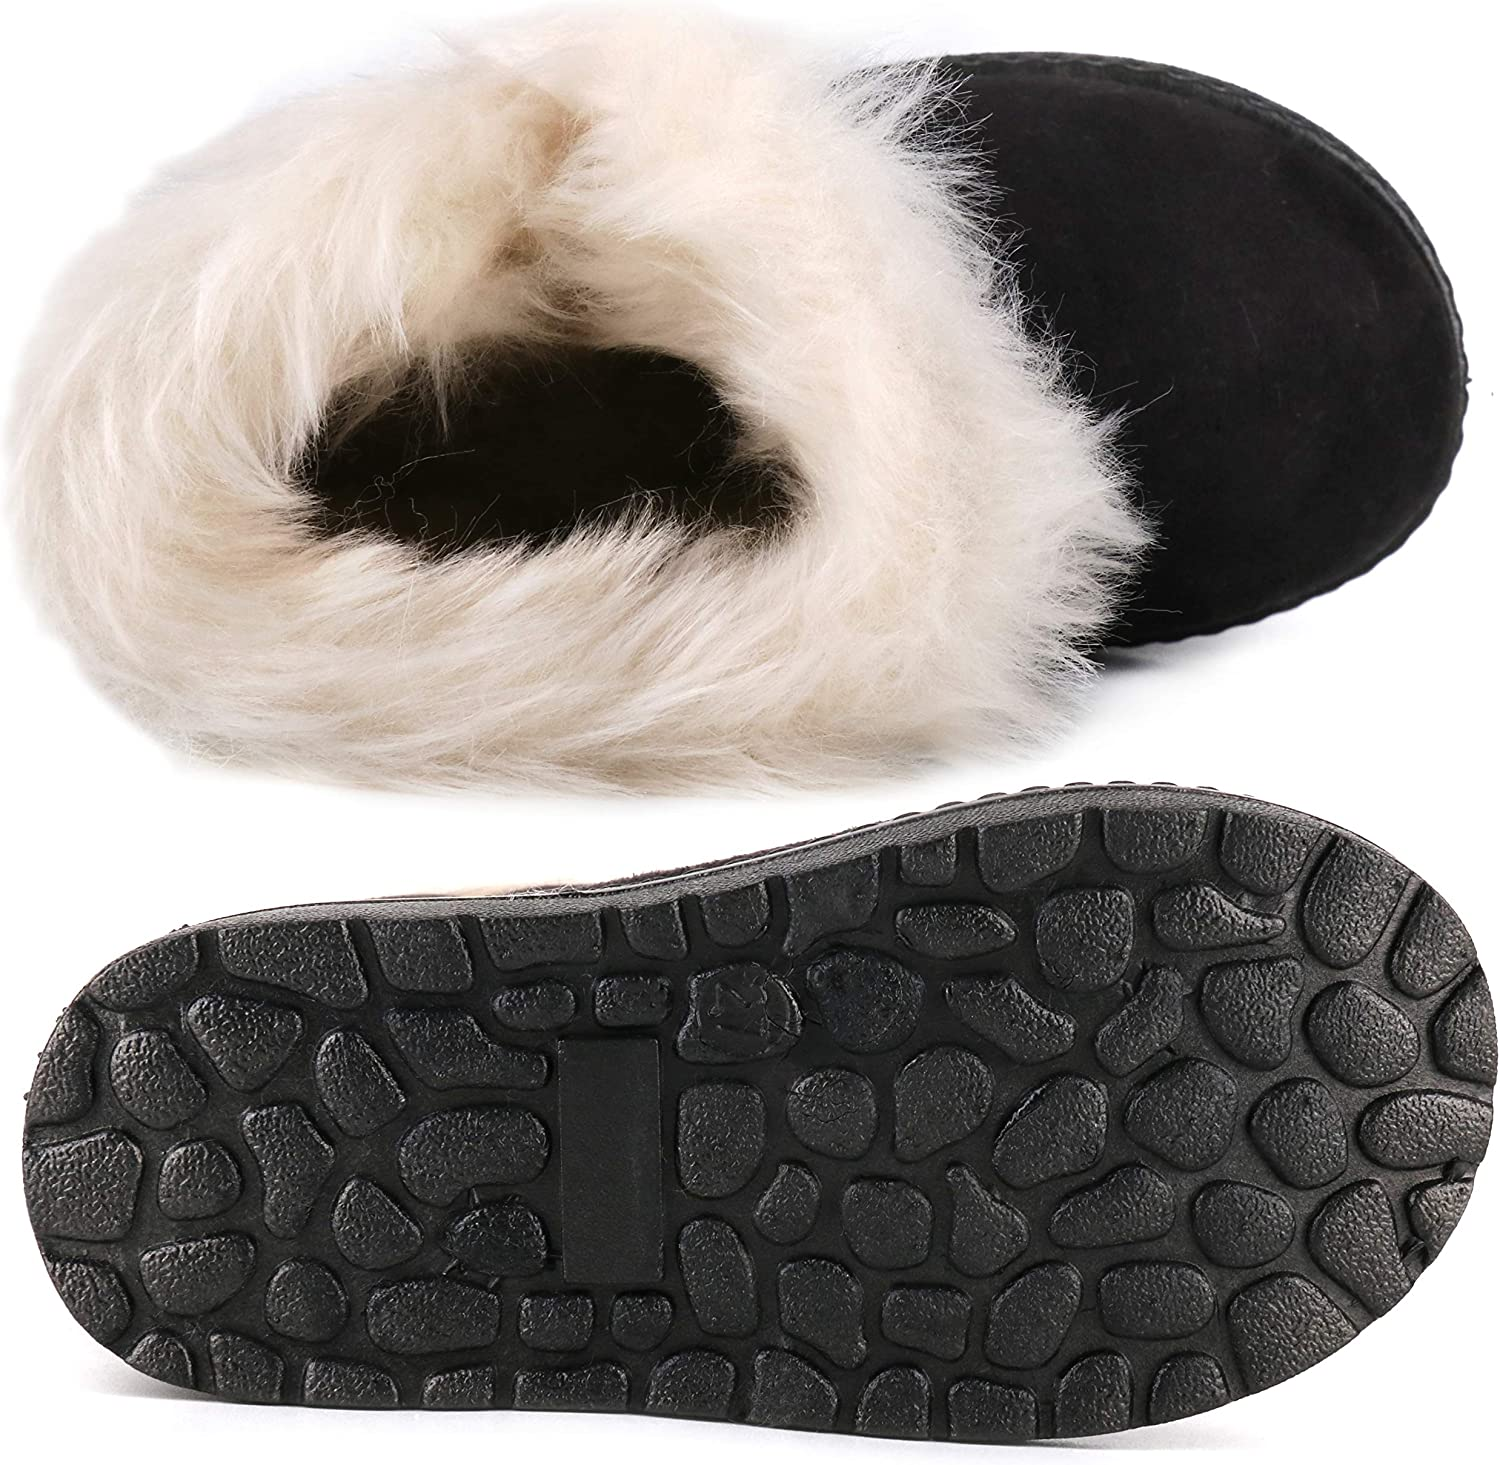 Femizee Girls Boys Warm Winter Flat Shoes Bailey Button Snow Boots(Toddler/Little Kid): Shoes